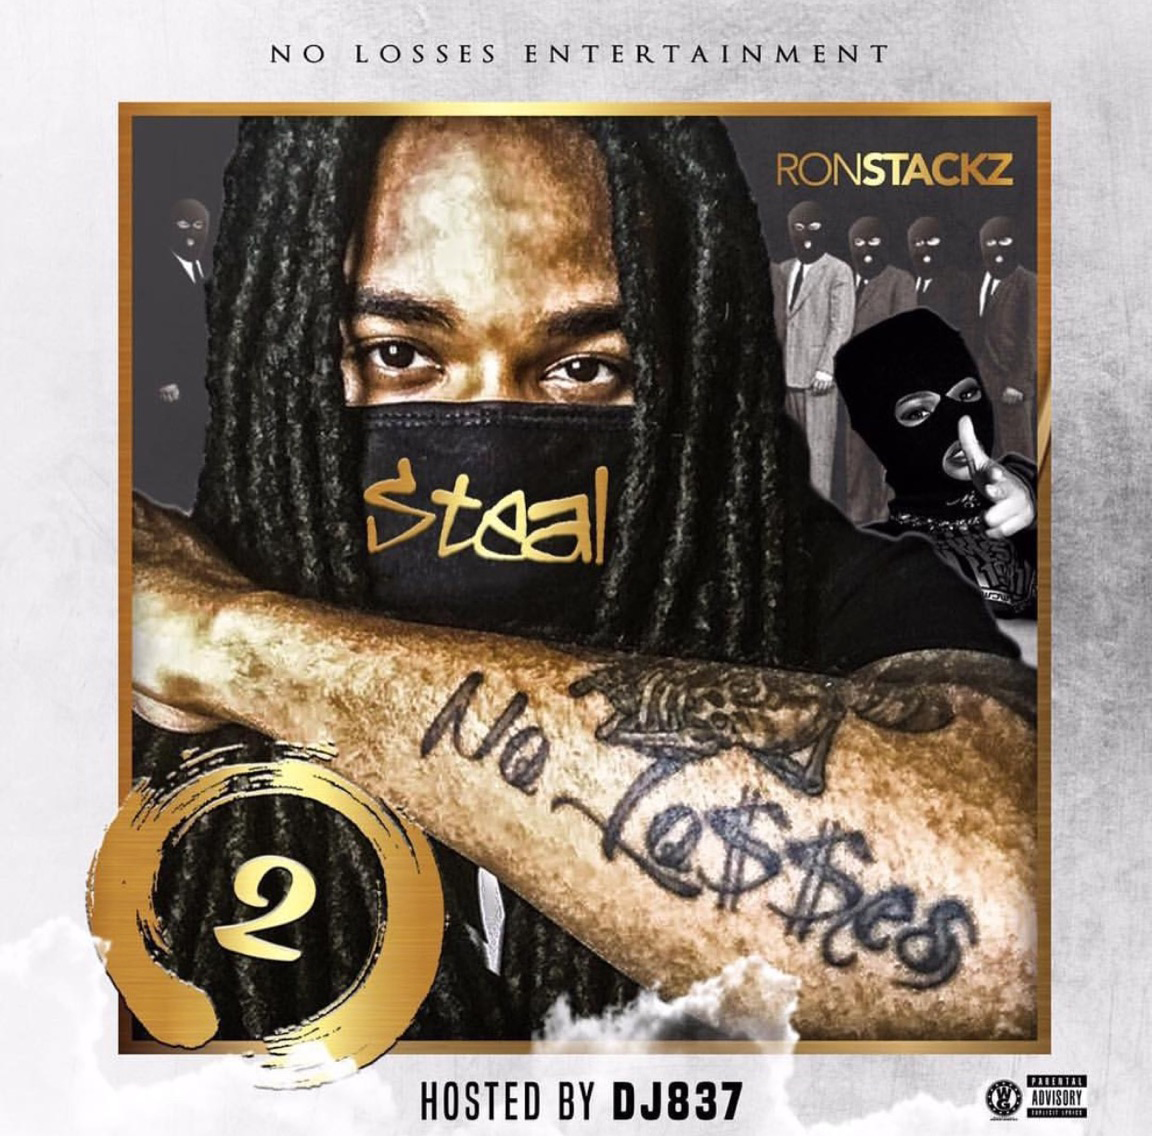 Ron Stackz – Steal No Losses 2 (Mixtape)